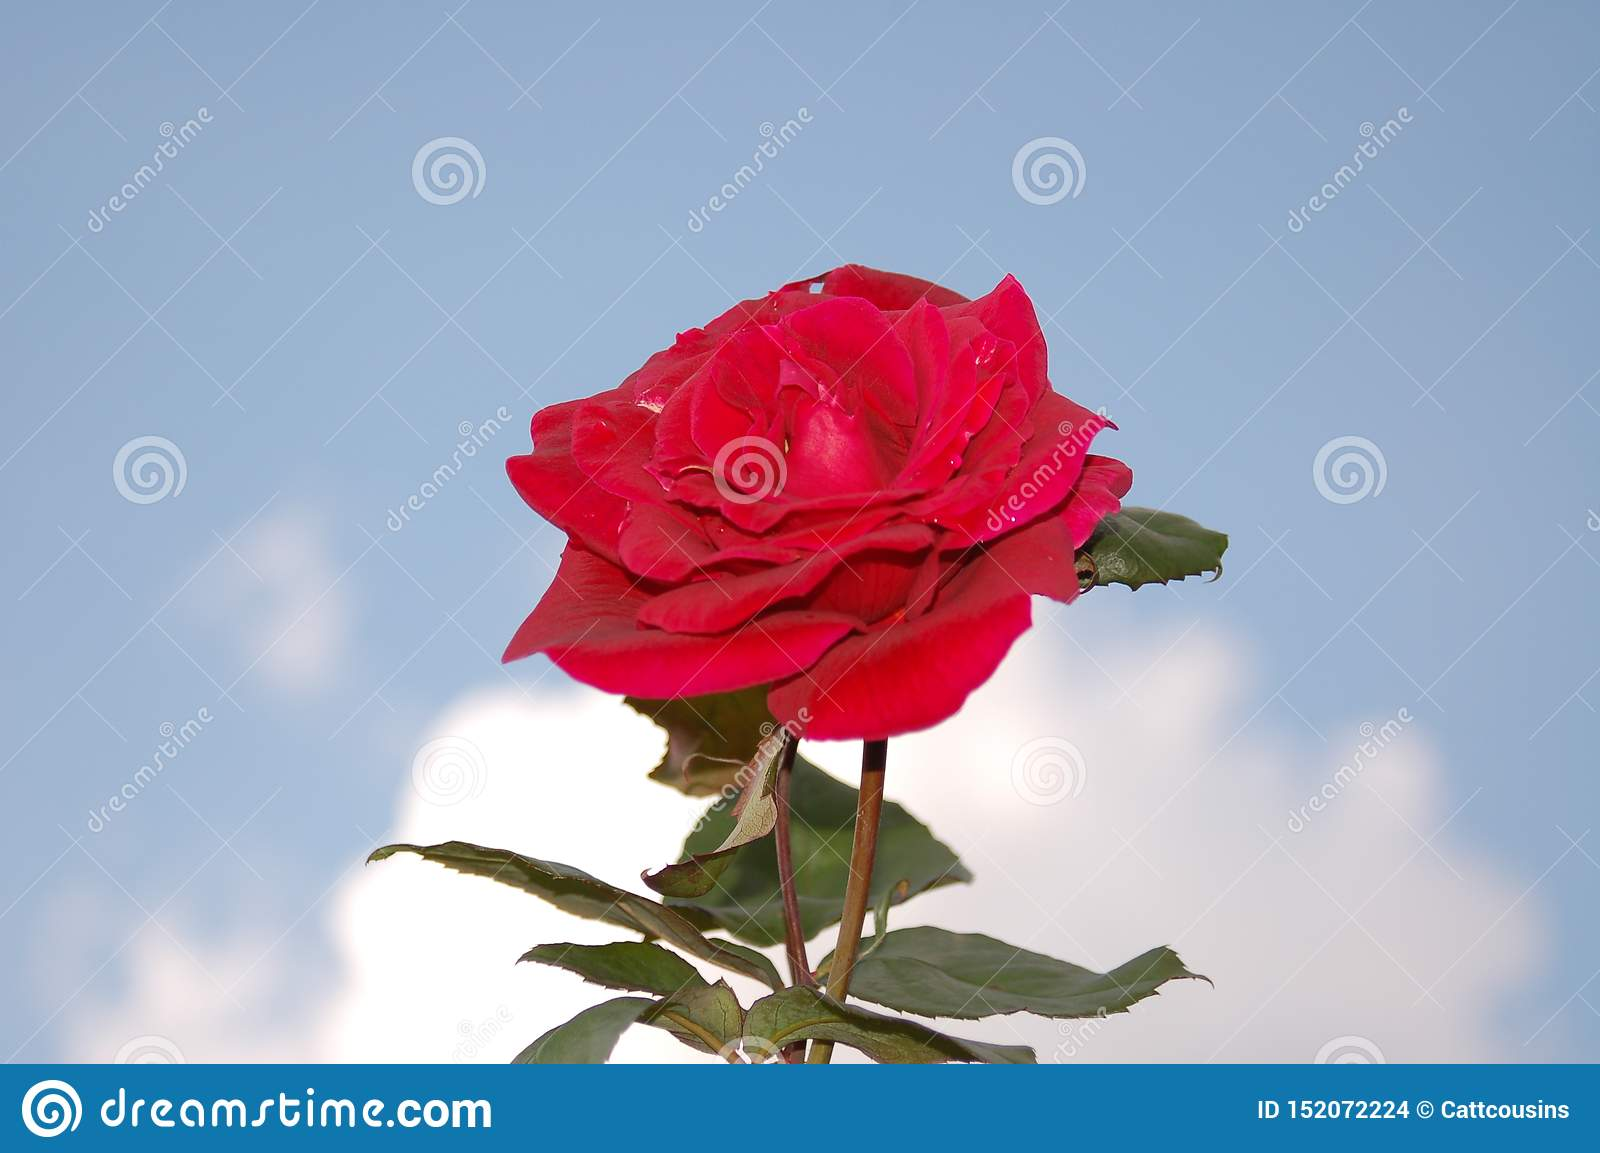 A single rose in the sky